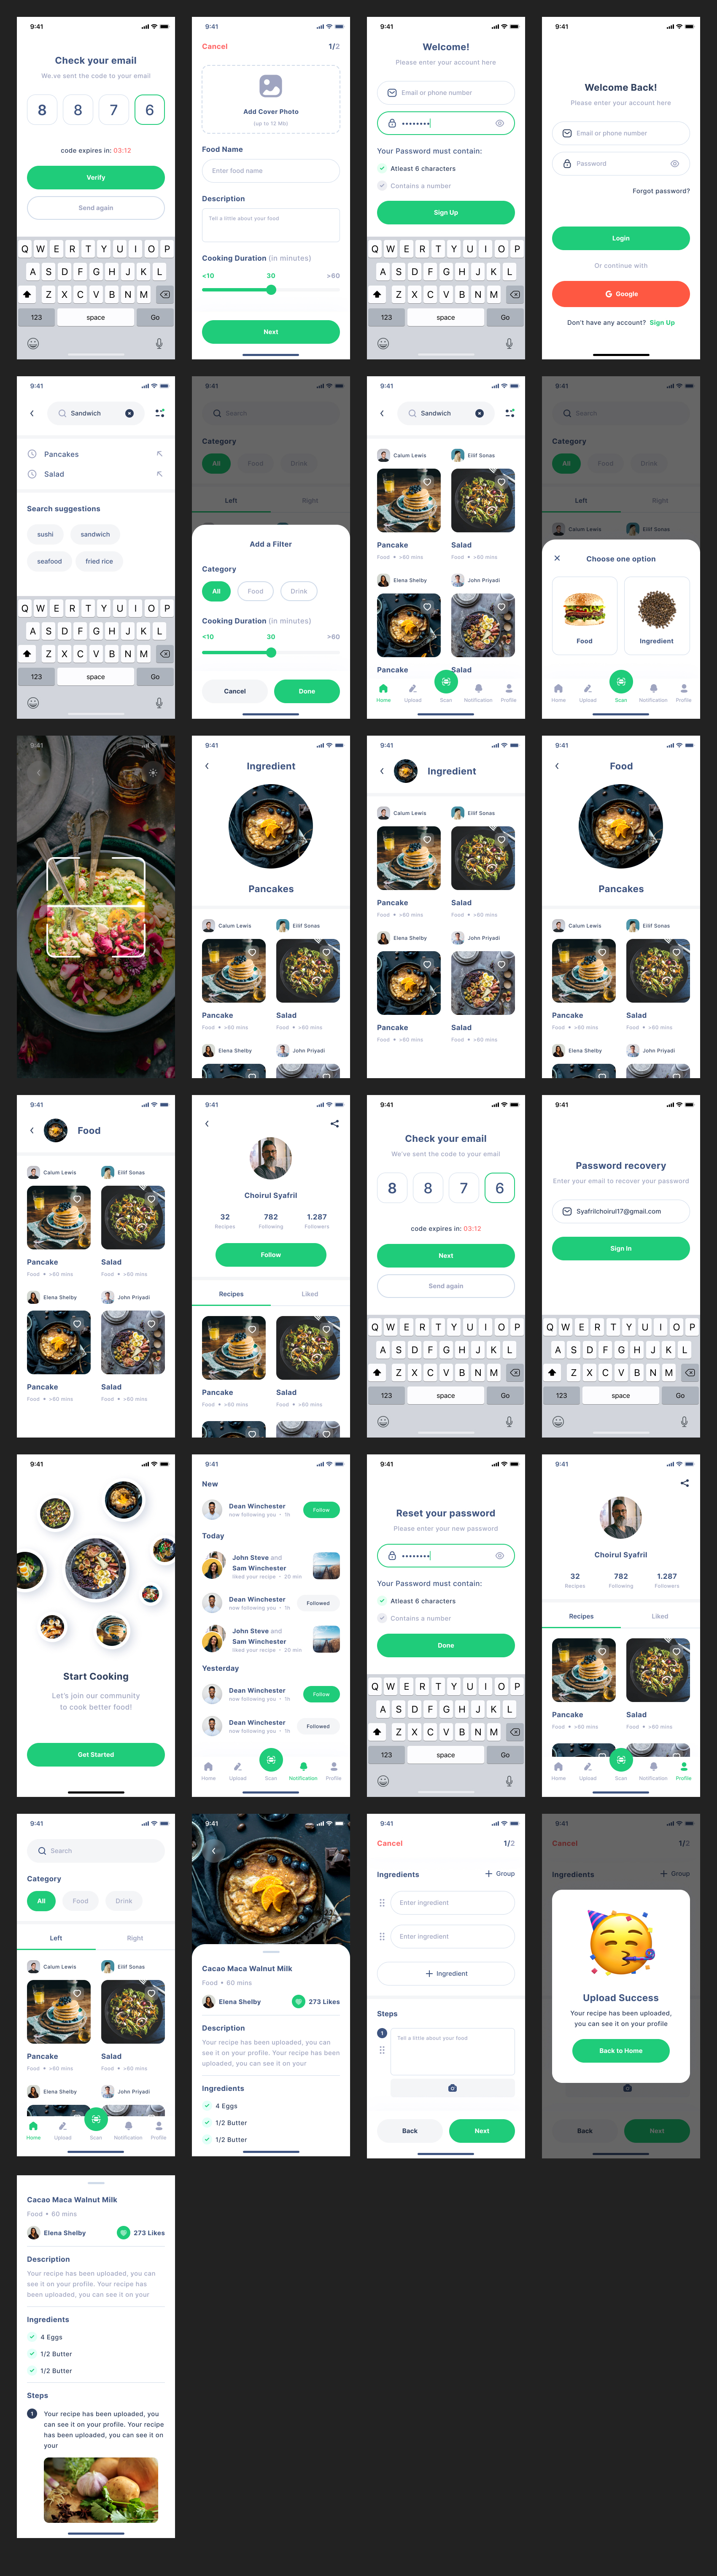 Chefio Recipe Free App UI Kit - Chefio is FREE UI Kit that we concern about the quality and style. This is apps coincides with 7 features and 20+ screens that will help you to find the best recipes apps you need and can scan any ingredients you don't know to know the name and details. Every screen created by our best designer with a clean and simple style. Also, we concern about the element to be componentized to be easily edited in the future. All layers are well organized with a style guide.